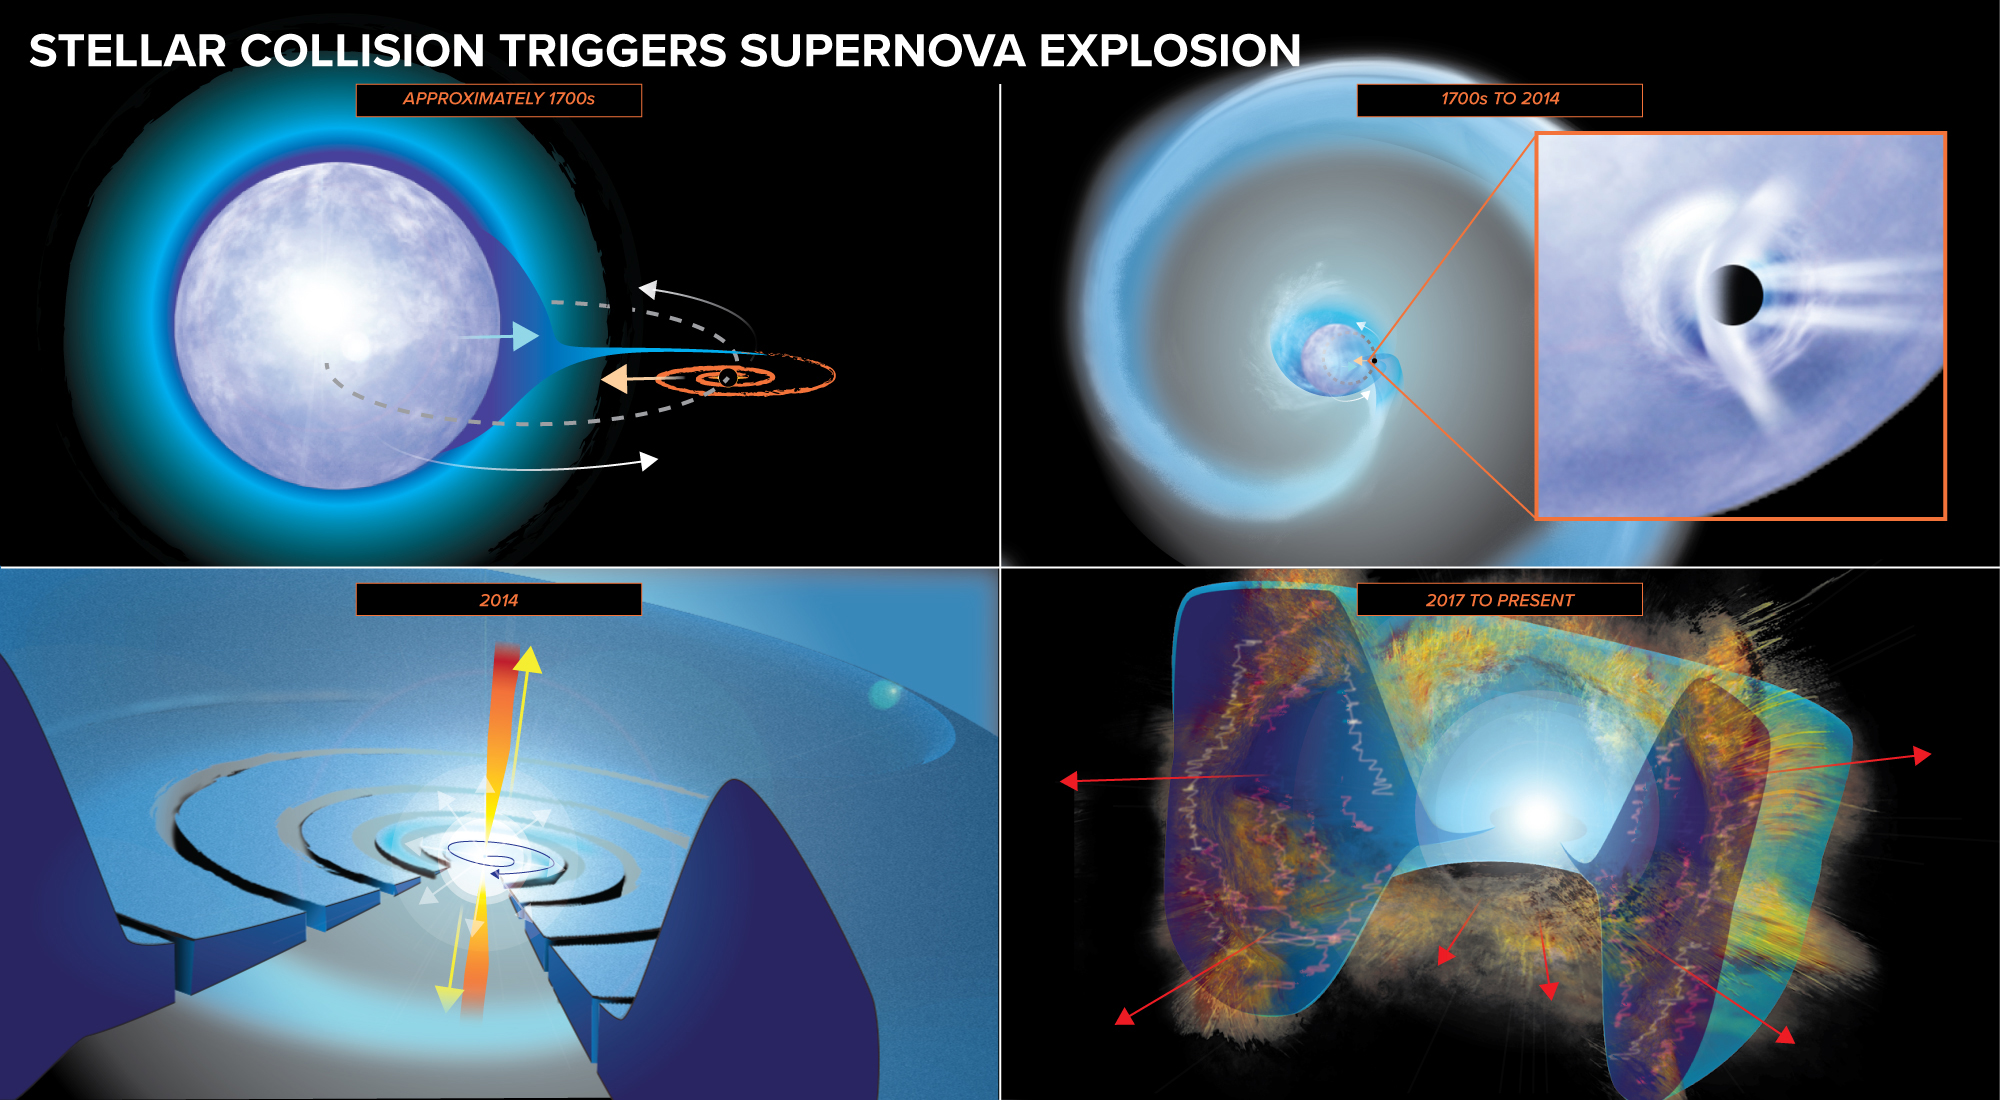 The timing of events. In the upper panels, a black hole or neutron star strips off the outer layers of a star, creating a disk of material around it. In the lower panels, the black hole disrupts the star's core, setting off a supernova that sends debris into the gas ejected earlier.